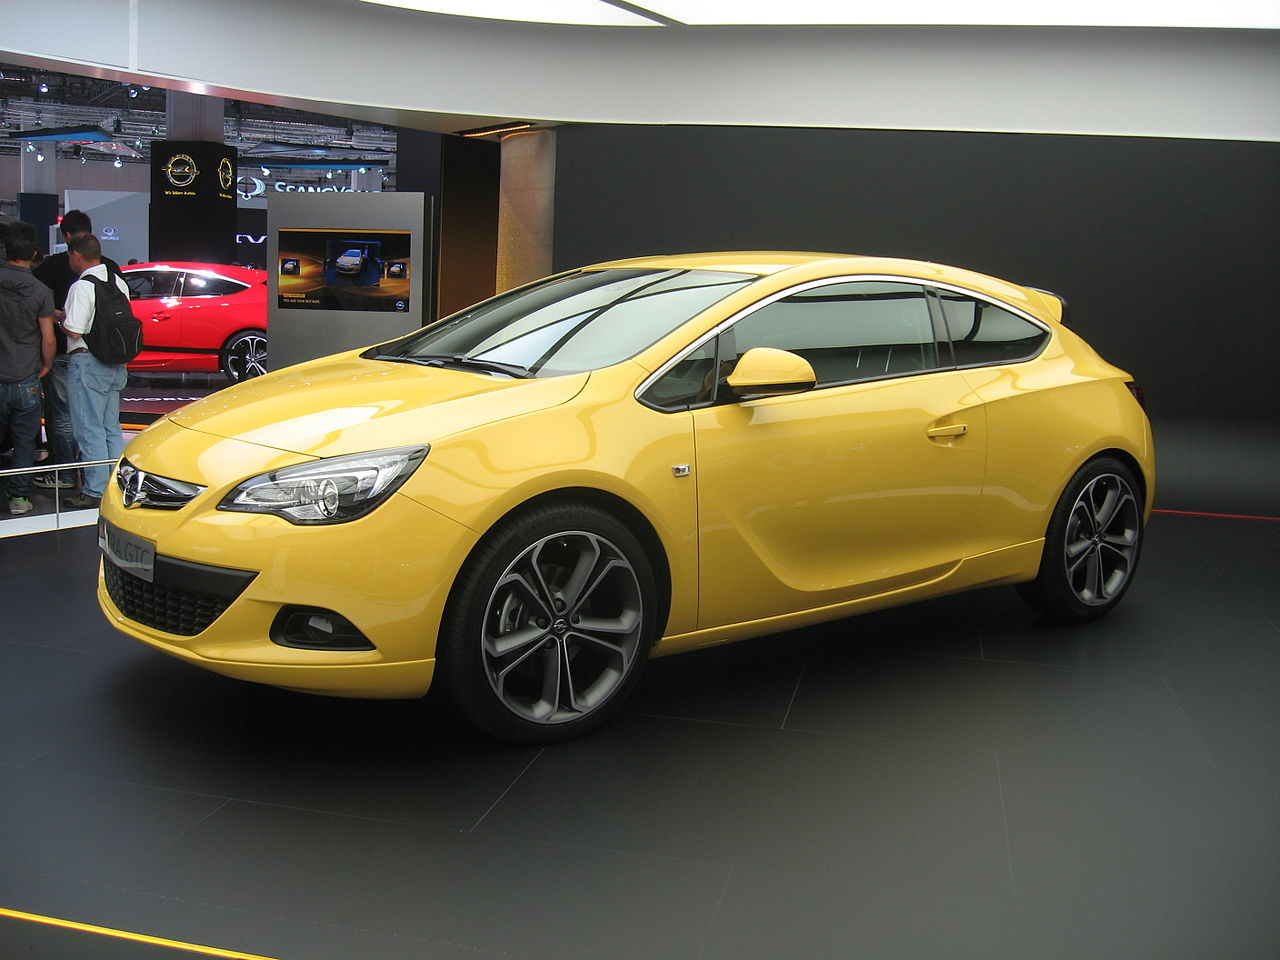 file opel astra j gtc front view jpg wikipedia. Black Bedroom Furniture Sets. Home Design Ideas